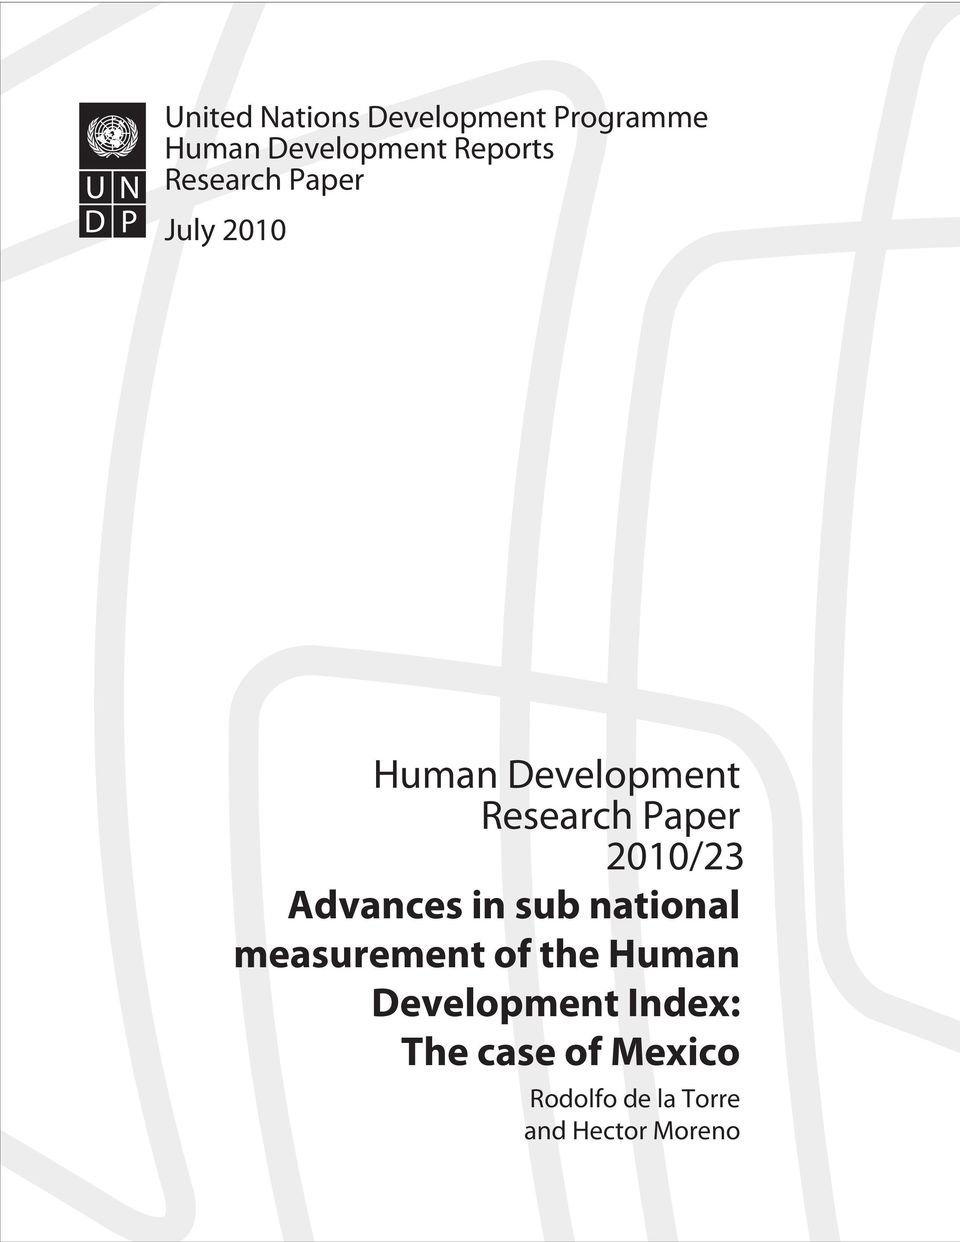 2010/23 Advances in sub national measurement of the Human